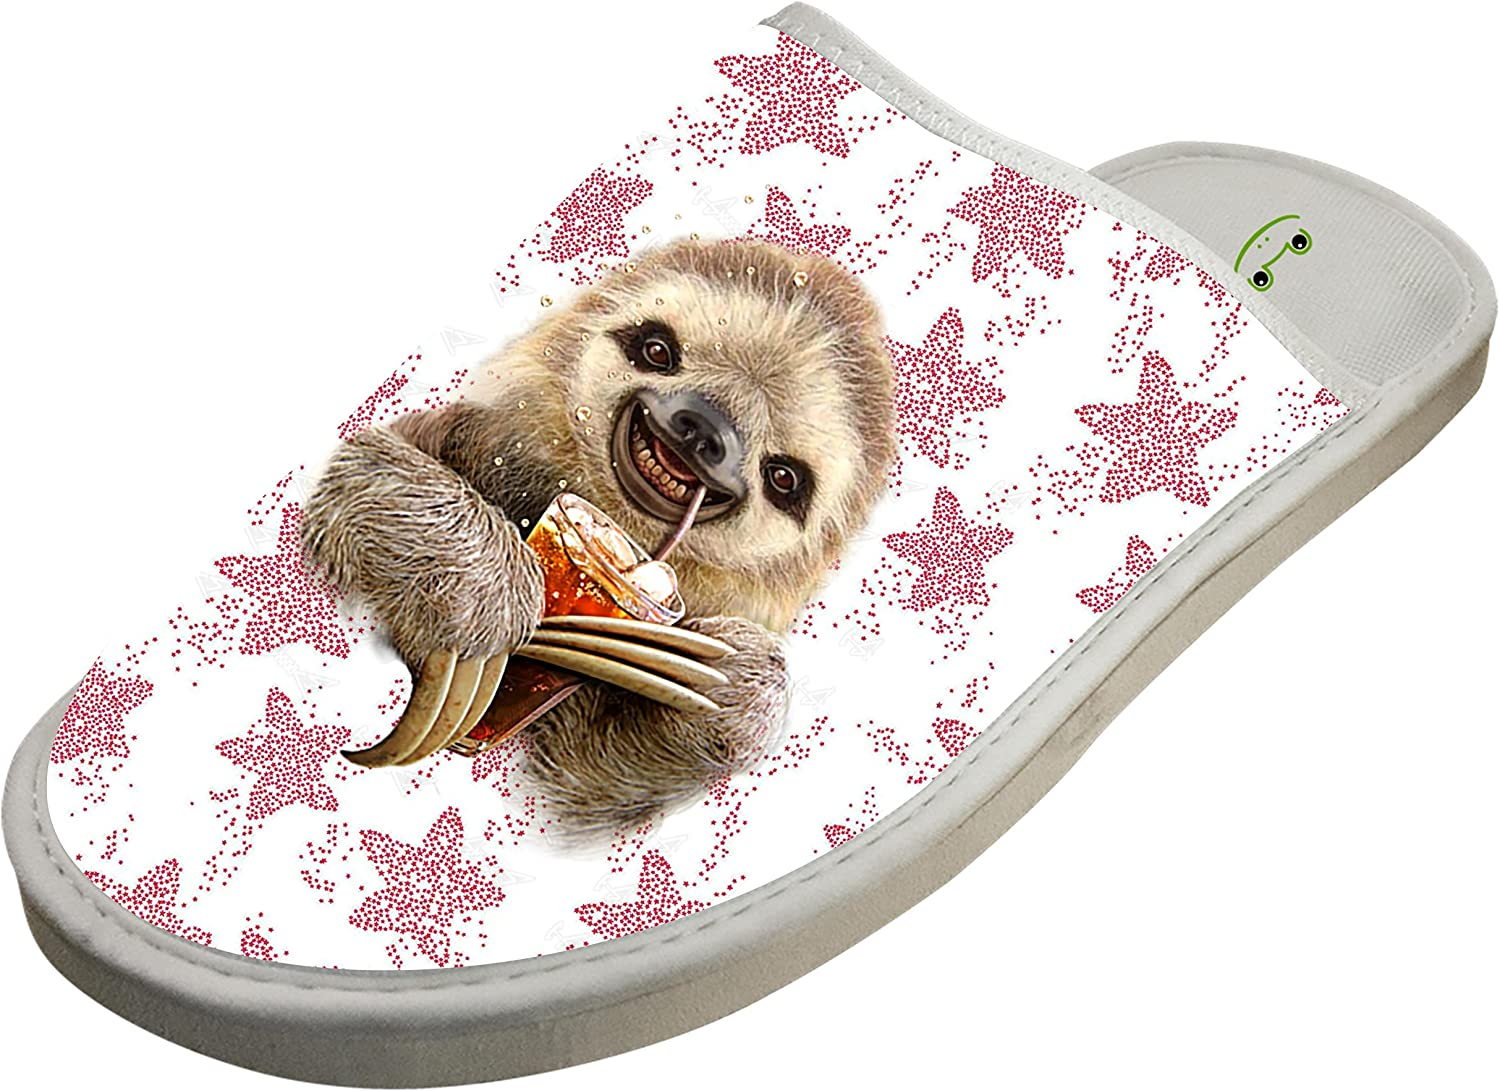 KOUY Drinking Sloth Closed Toe Cotton Slippers Warm Soft Indoor Shoes Non-watertight